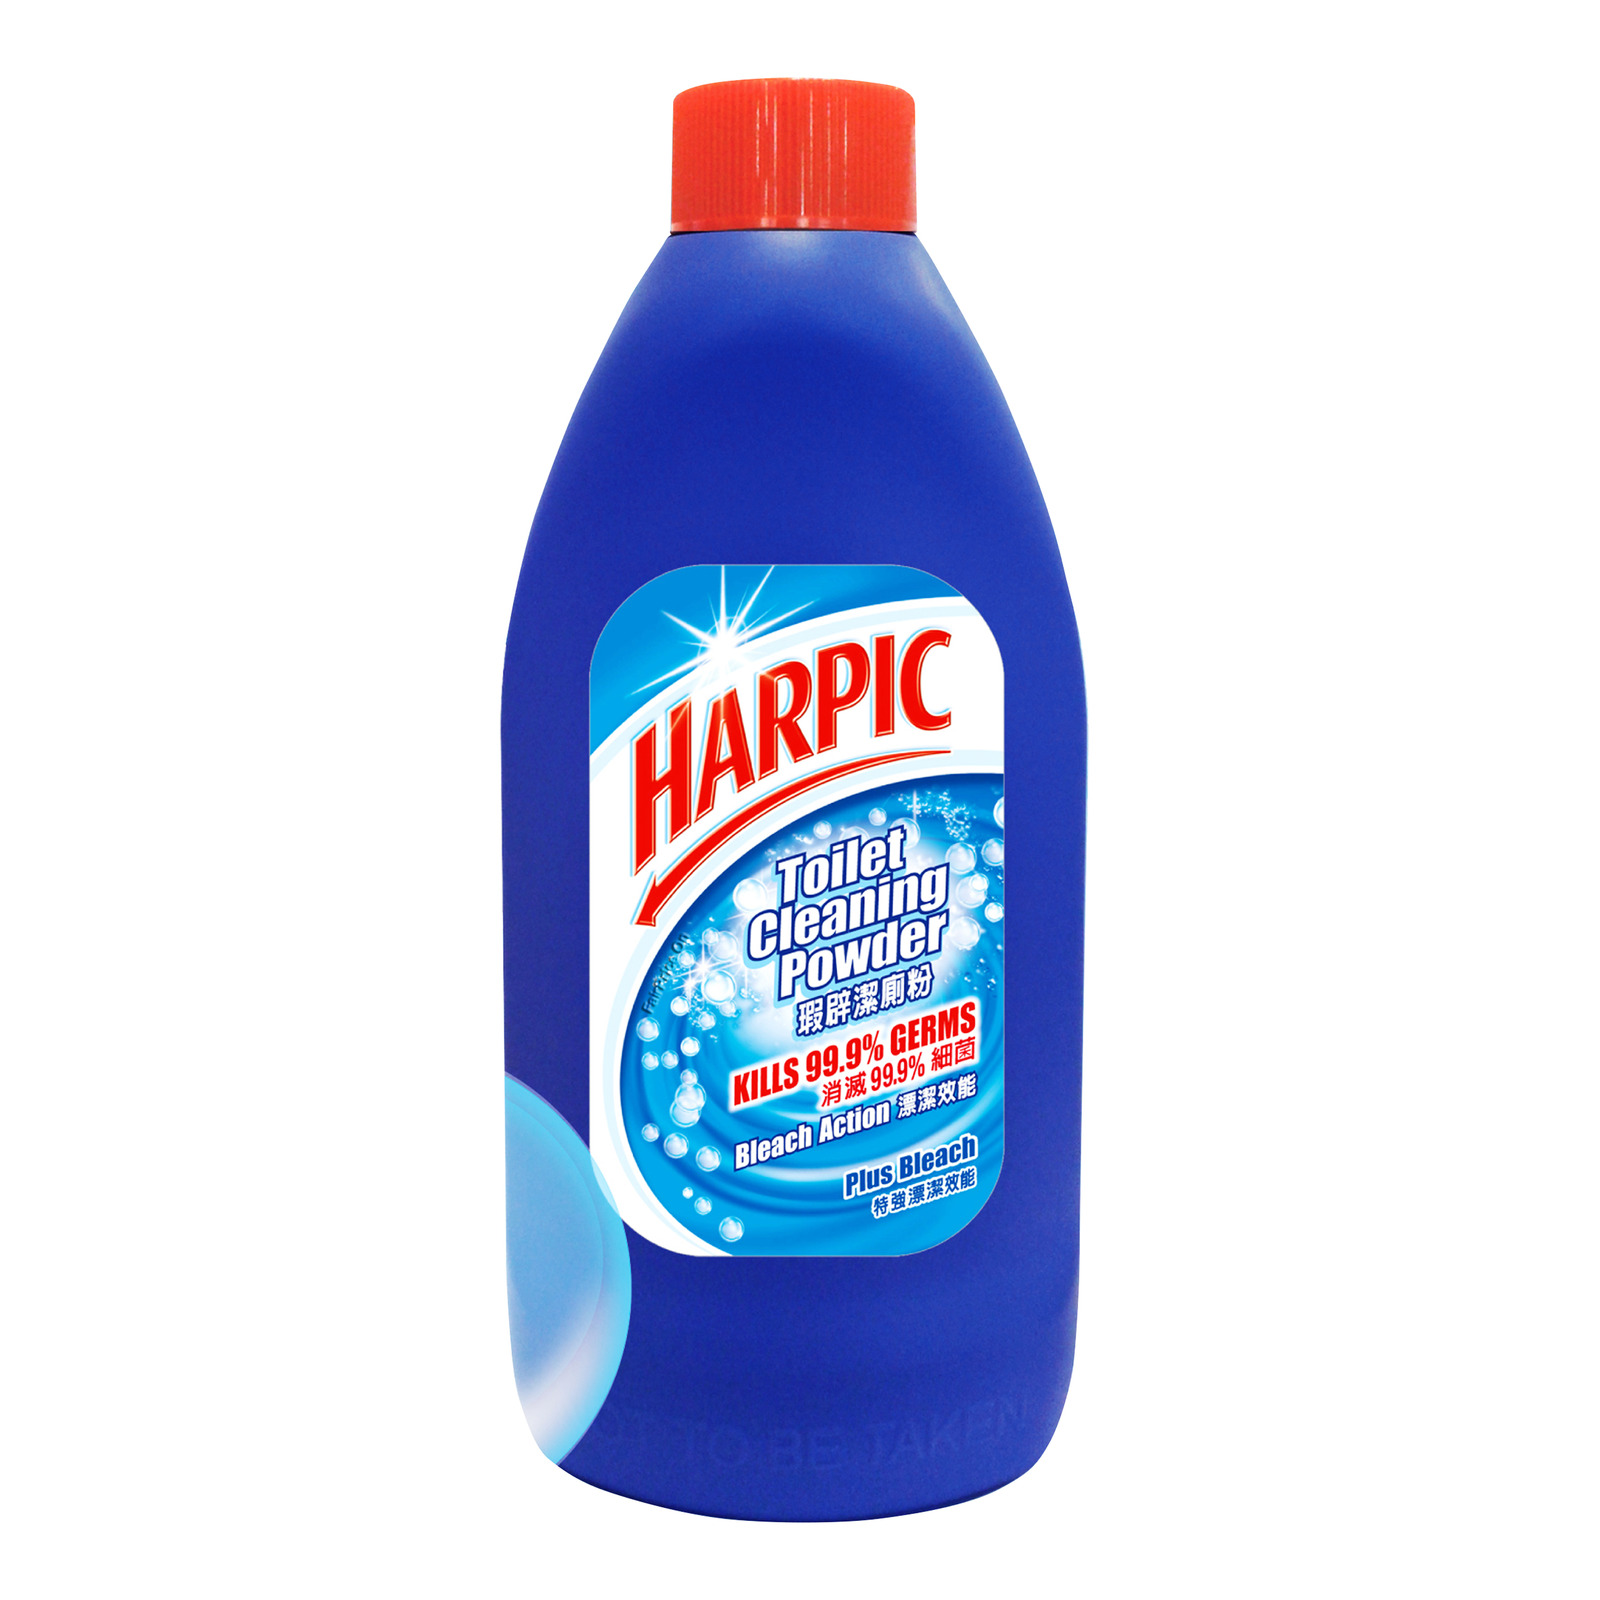 Harpic Toilet Cleaning Powder - Bleach Action